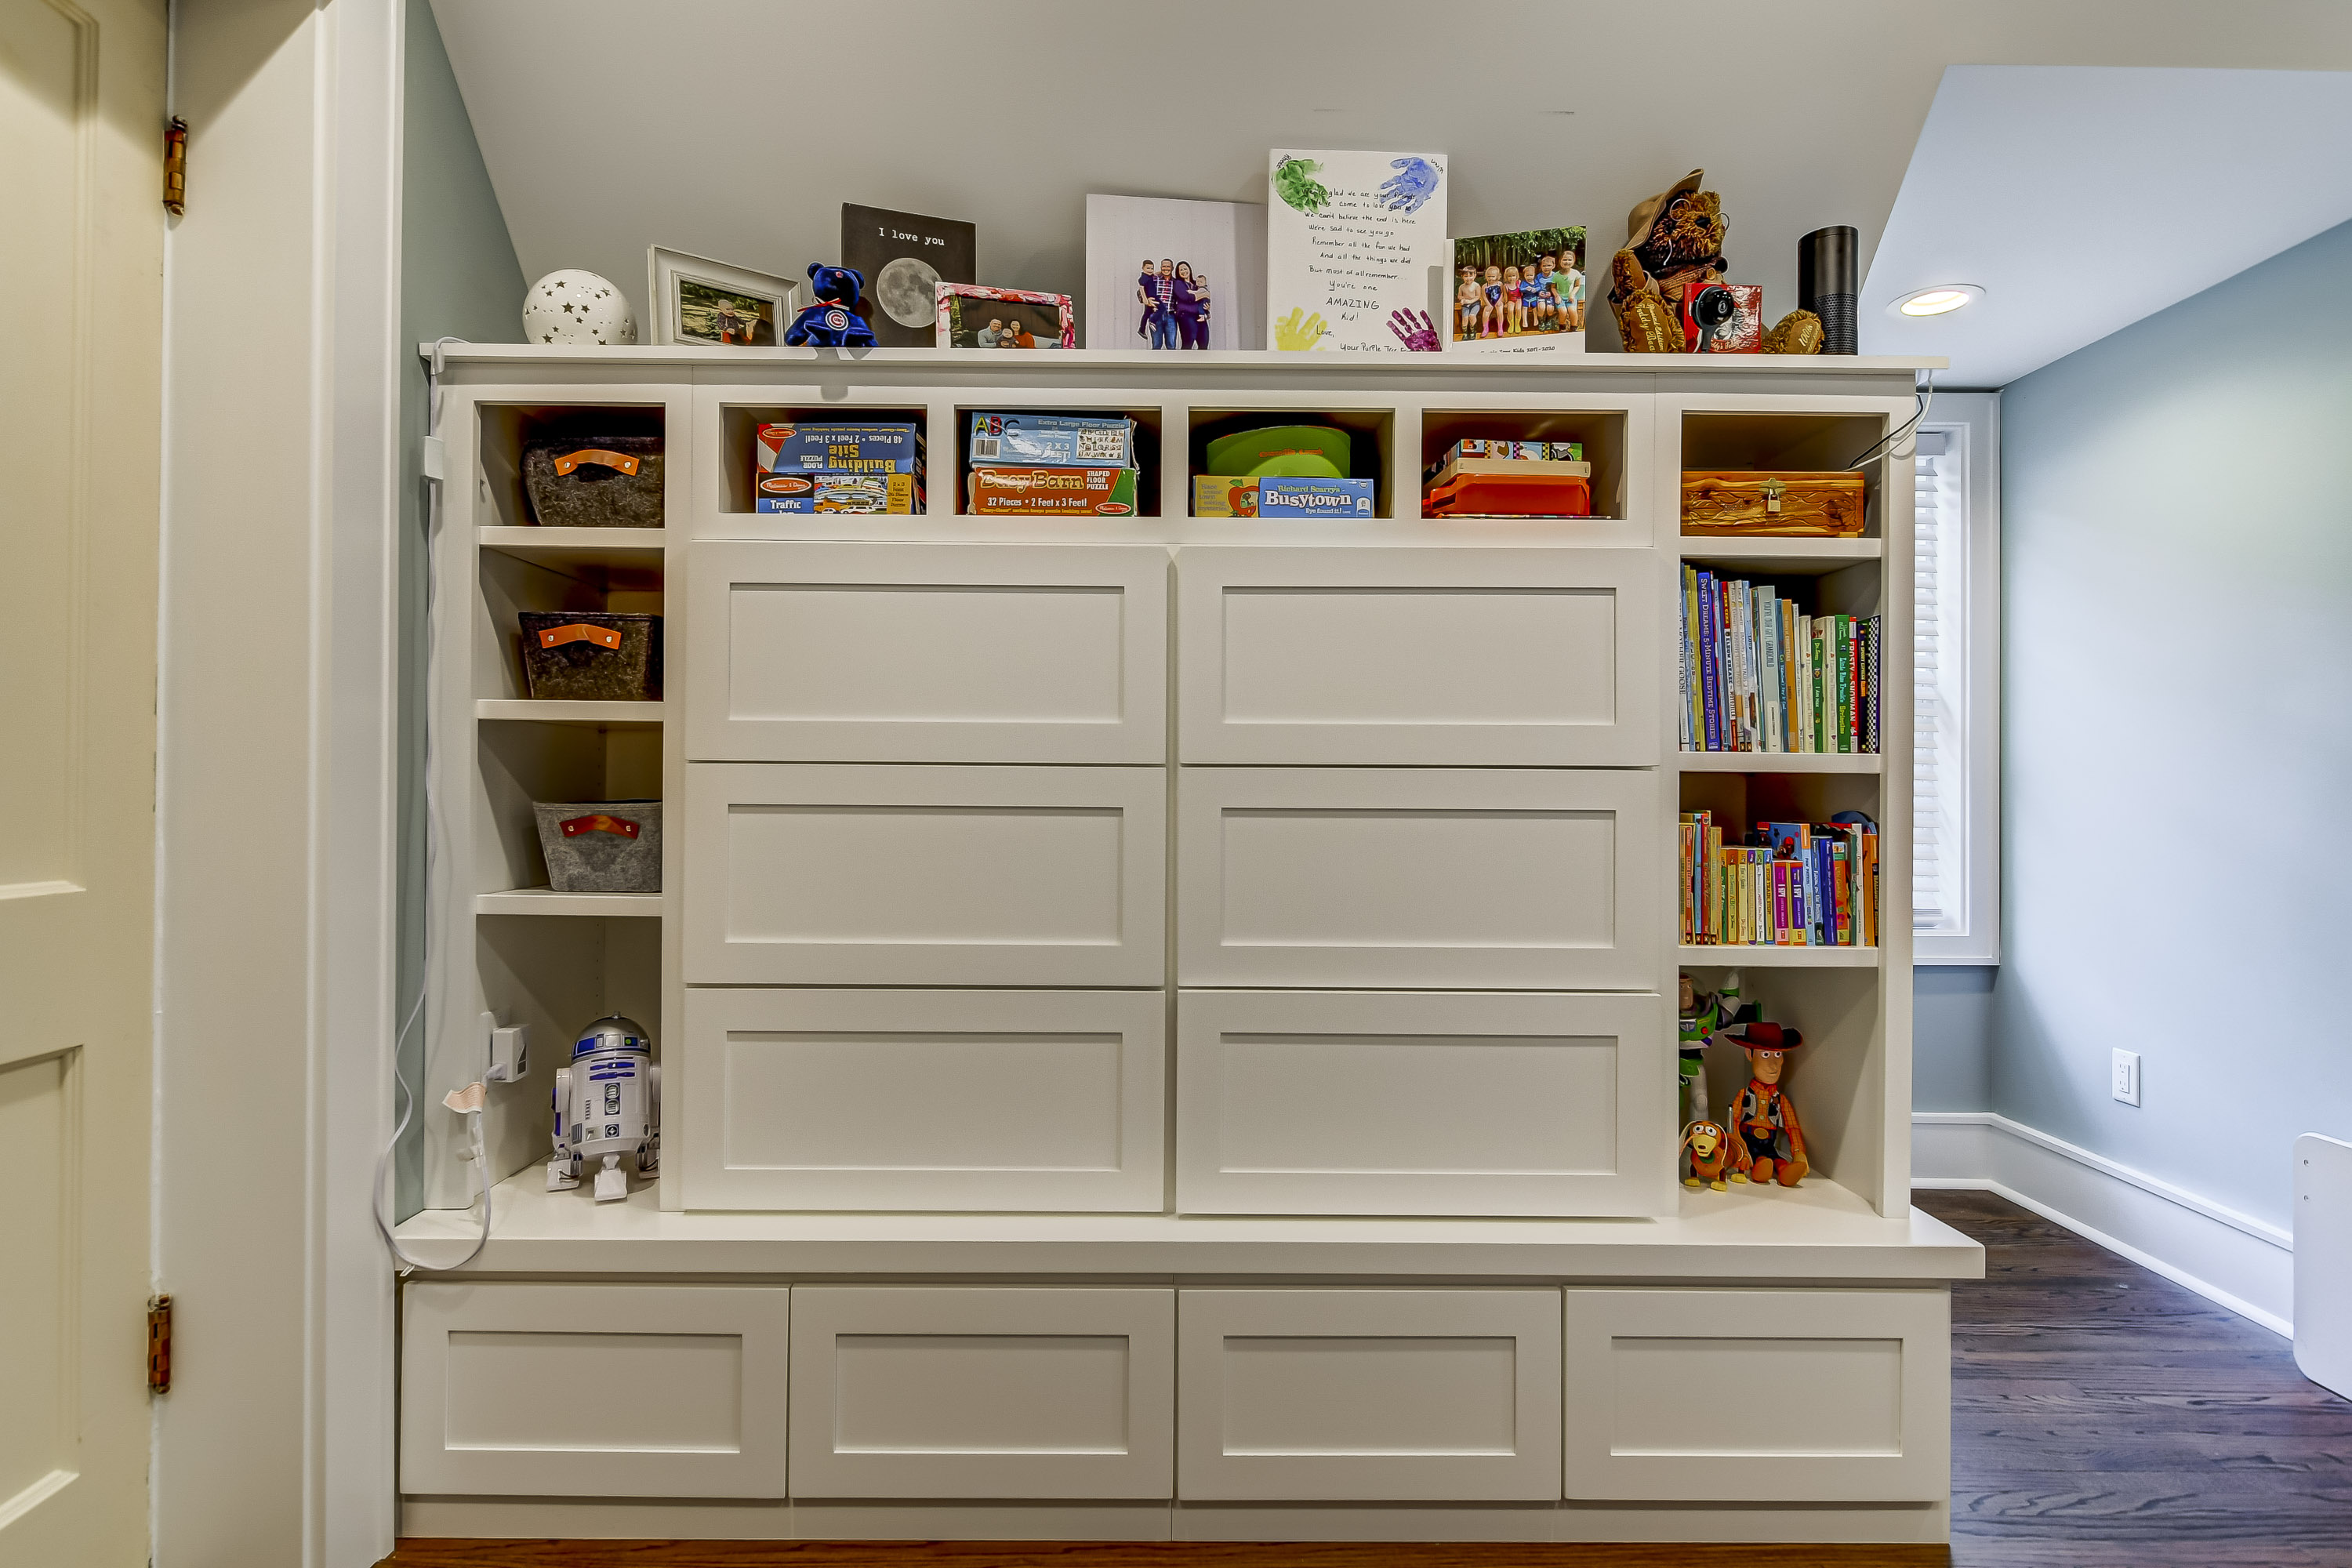 Childs Room Built-in